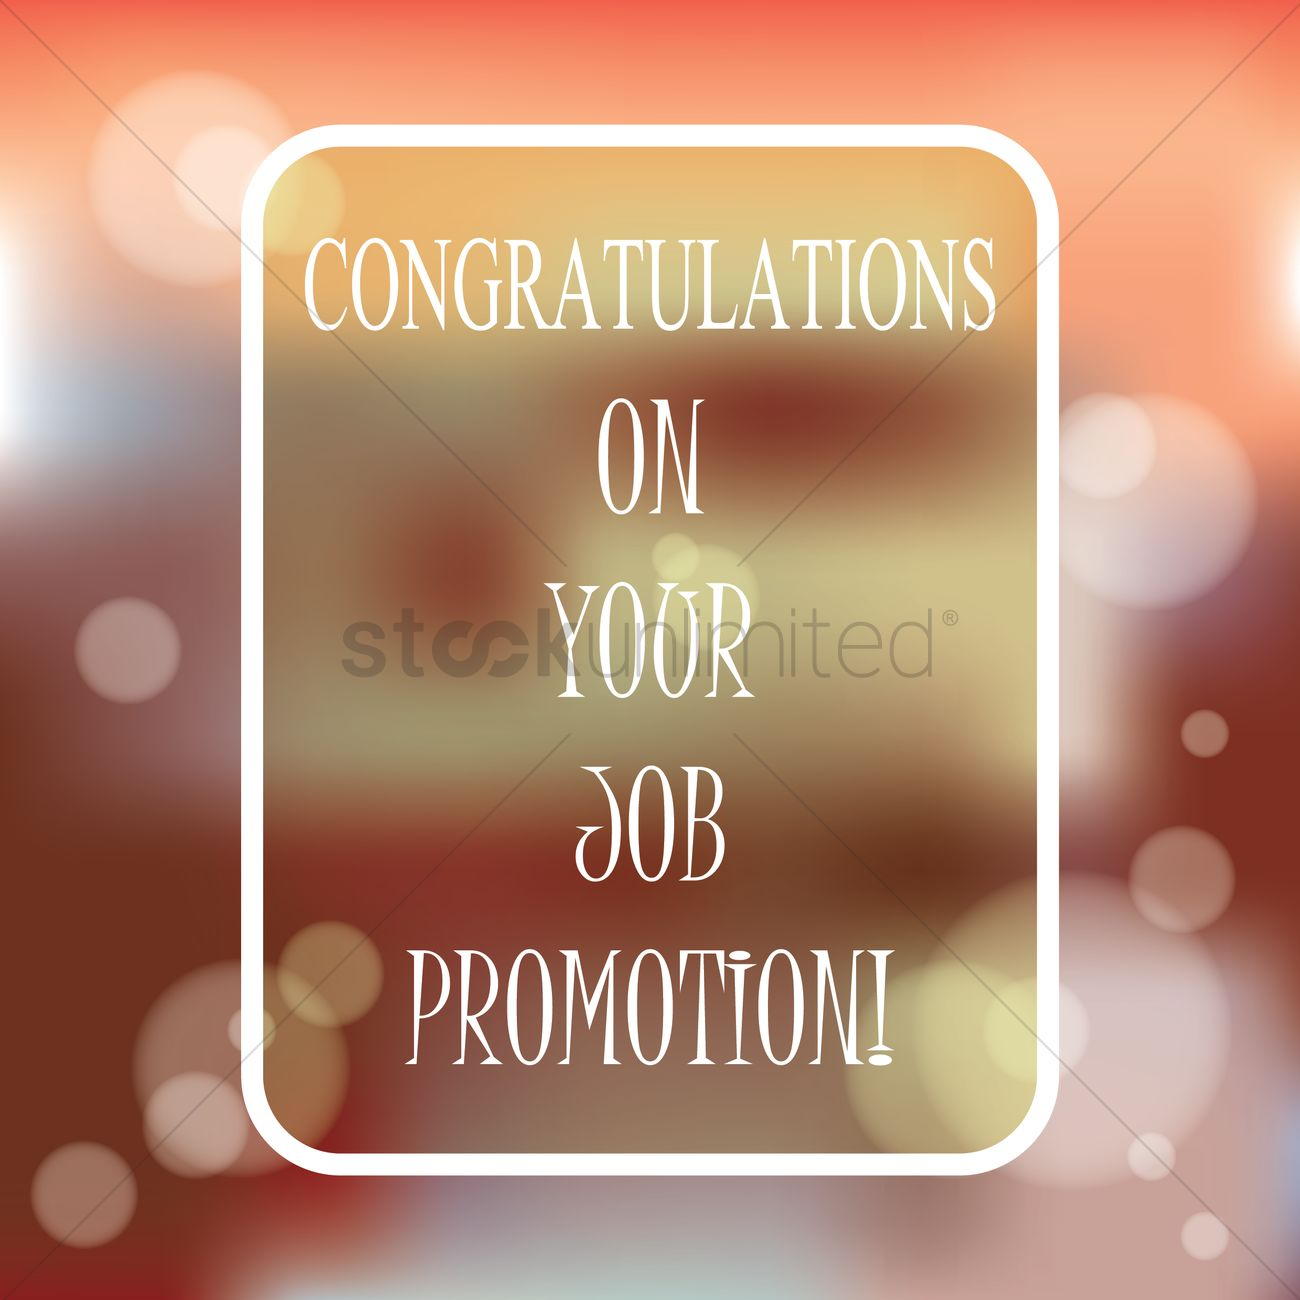 Promotion congratulations images - photo#22